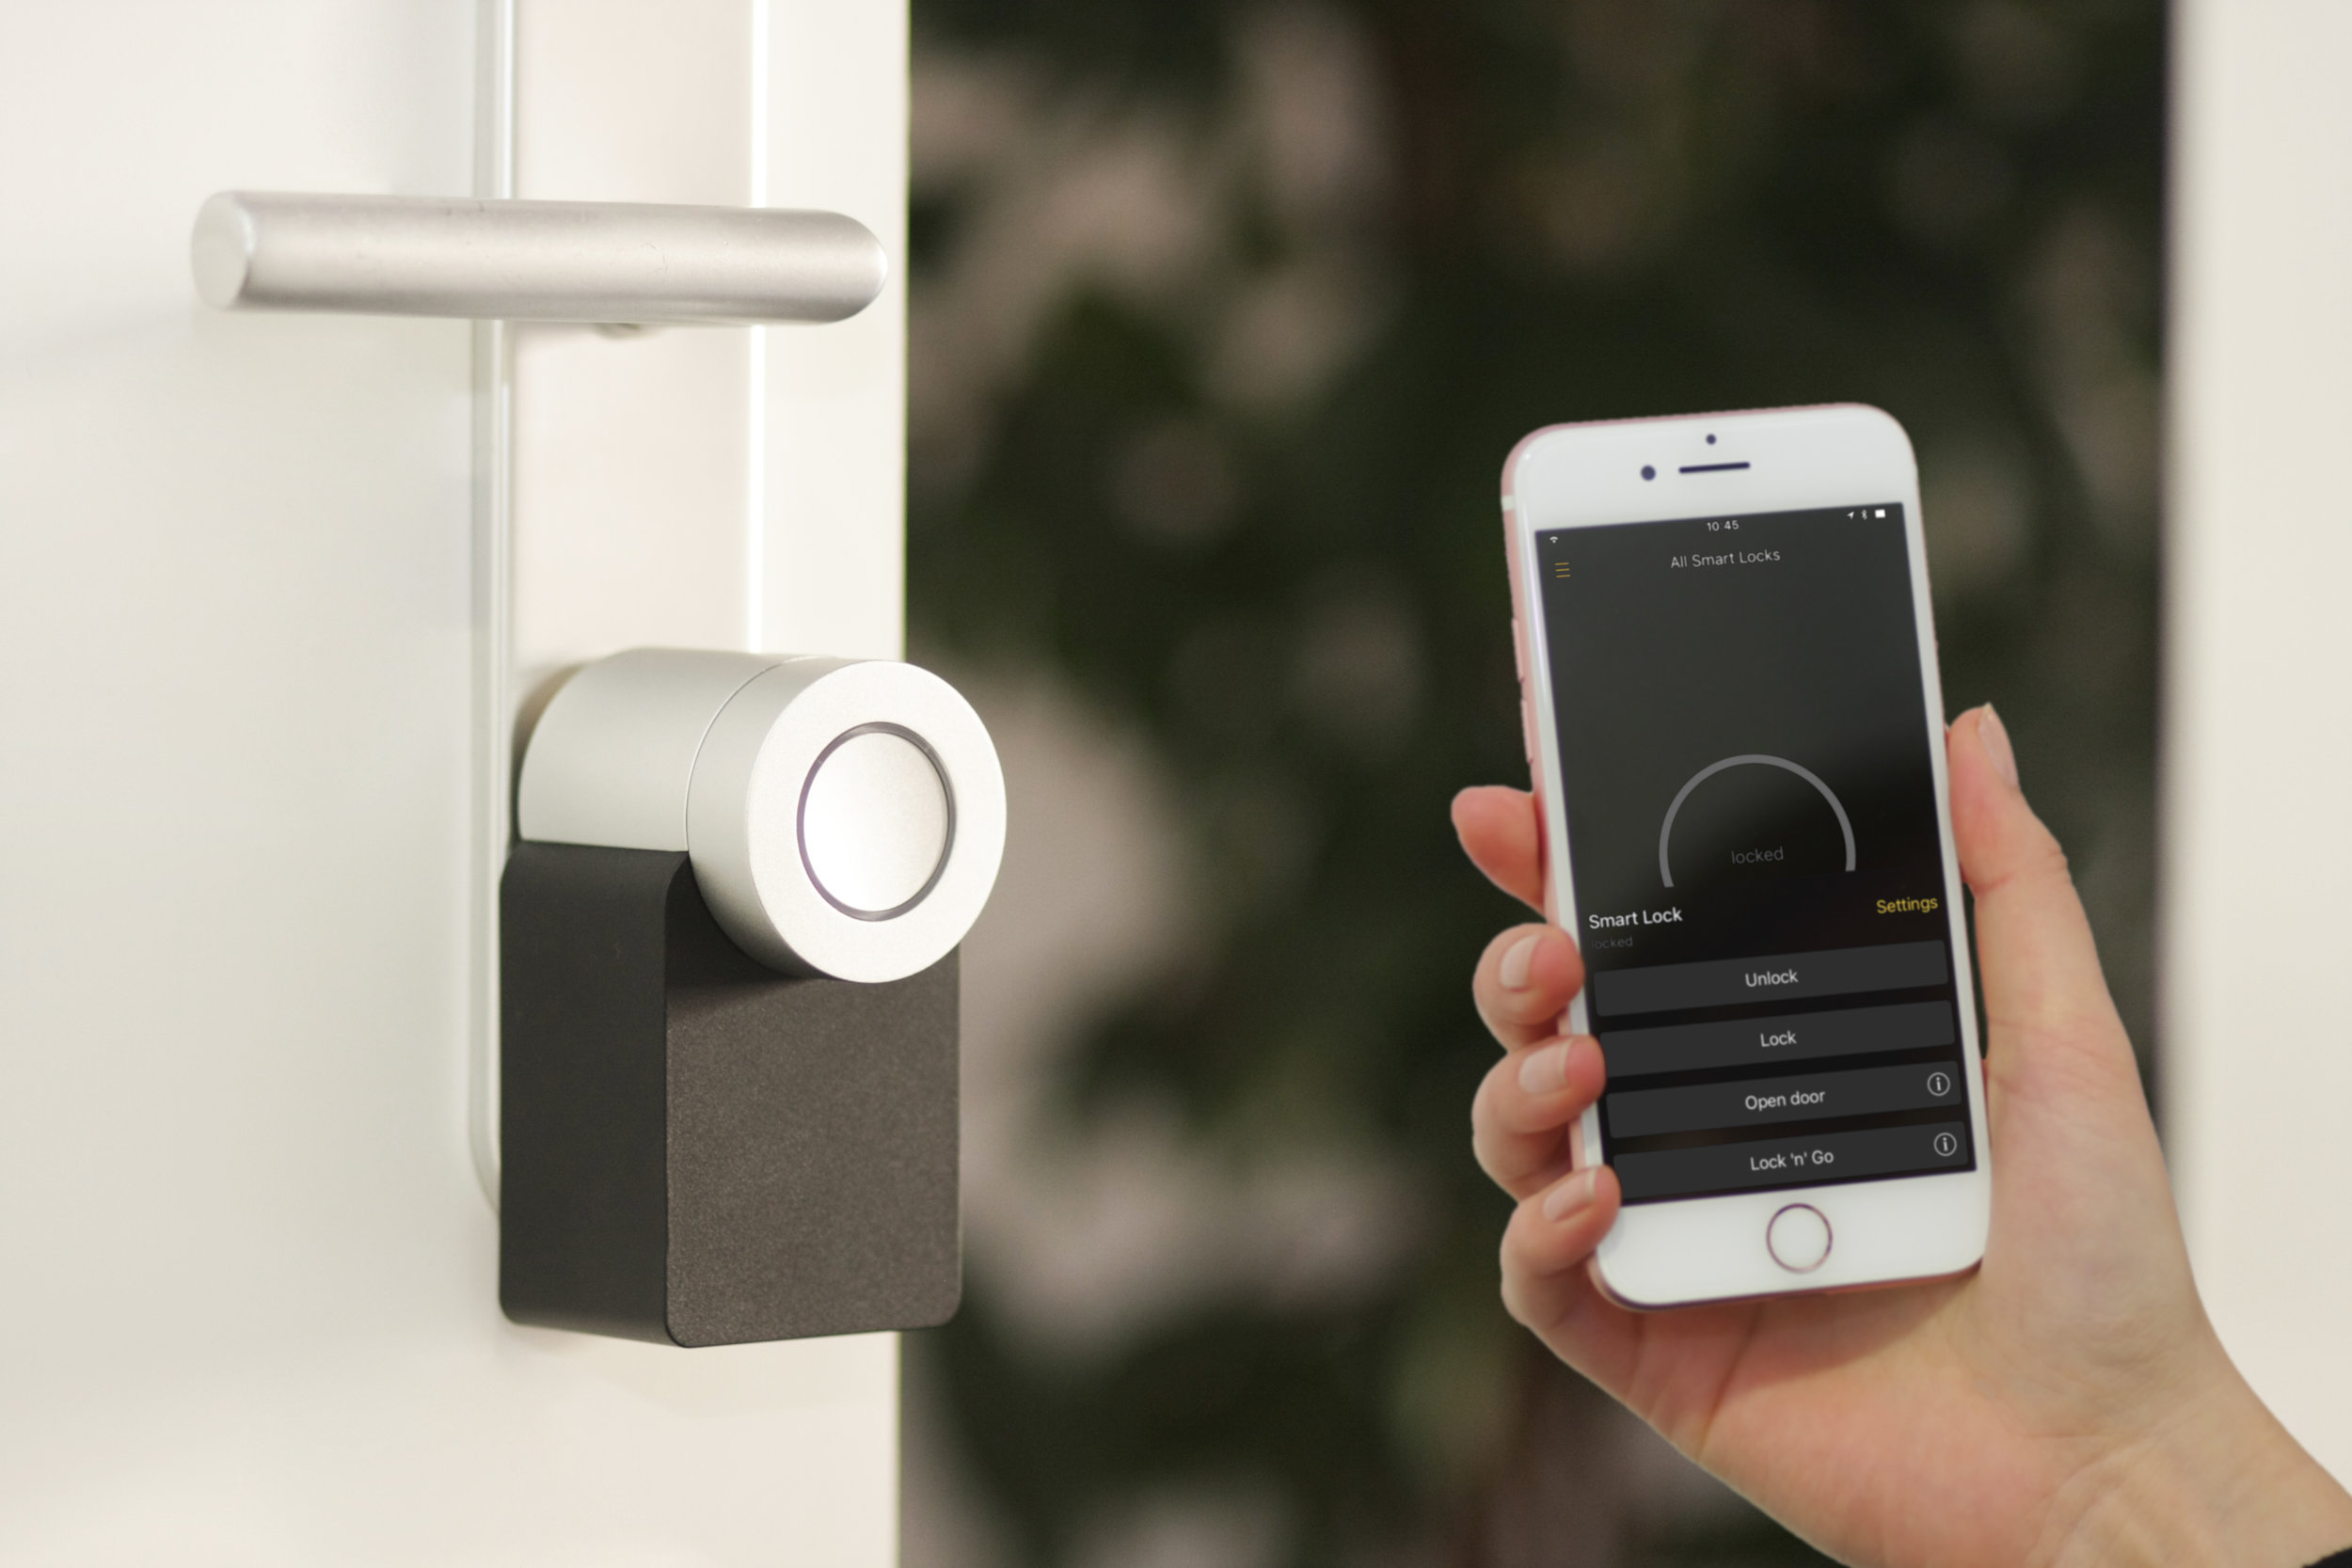 Added Safety and Security - Smart locks, video doorbells, and wifi cameras are just some of the devices that can be used to increase the security of your home and give you added peace of mind. These devices keep you safe while you are home but also allow you to monitor your home while you are away or keep an eye on rental or vacation properties, all without a costly monthly subscription to an alarm company.